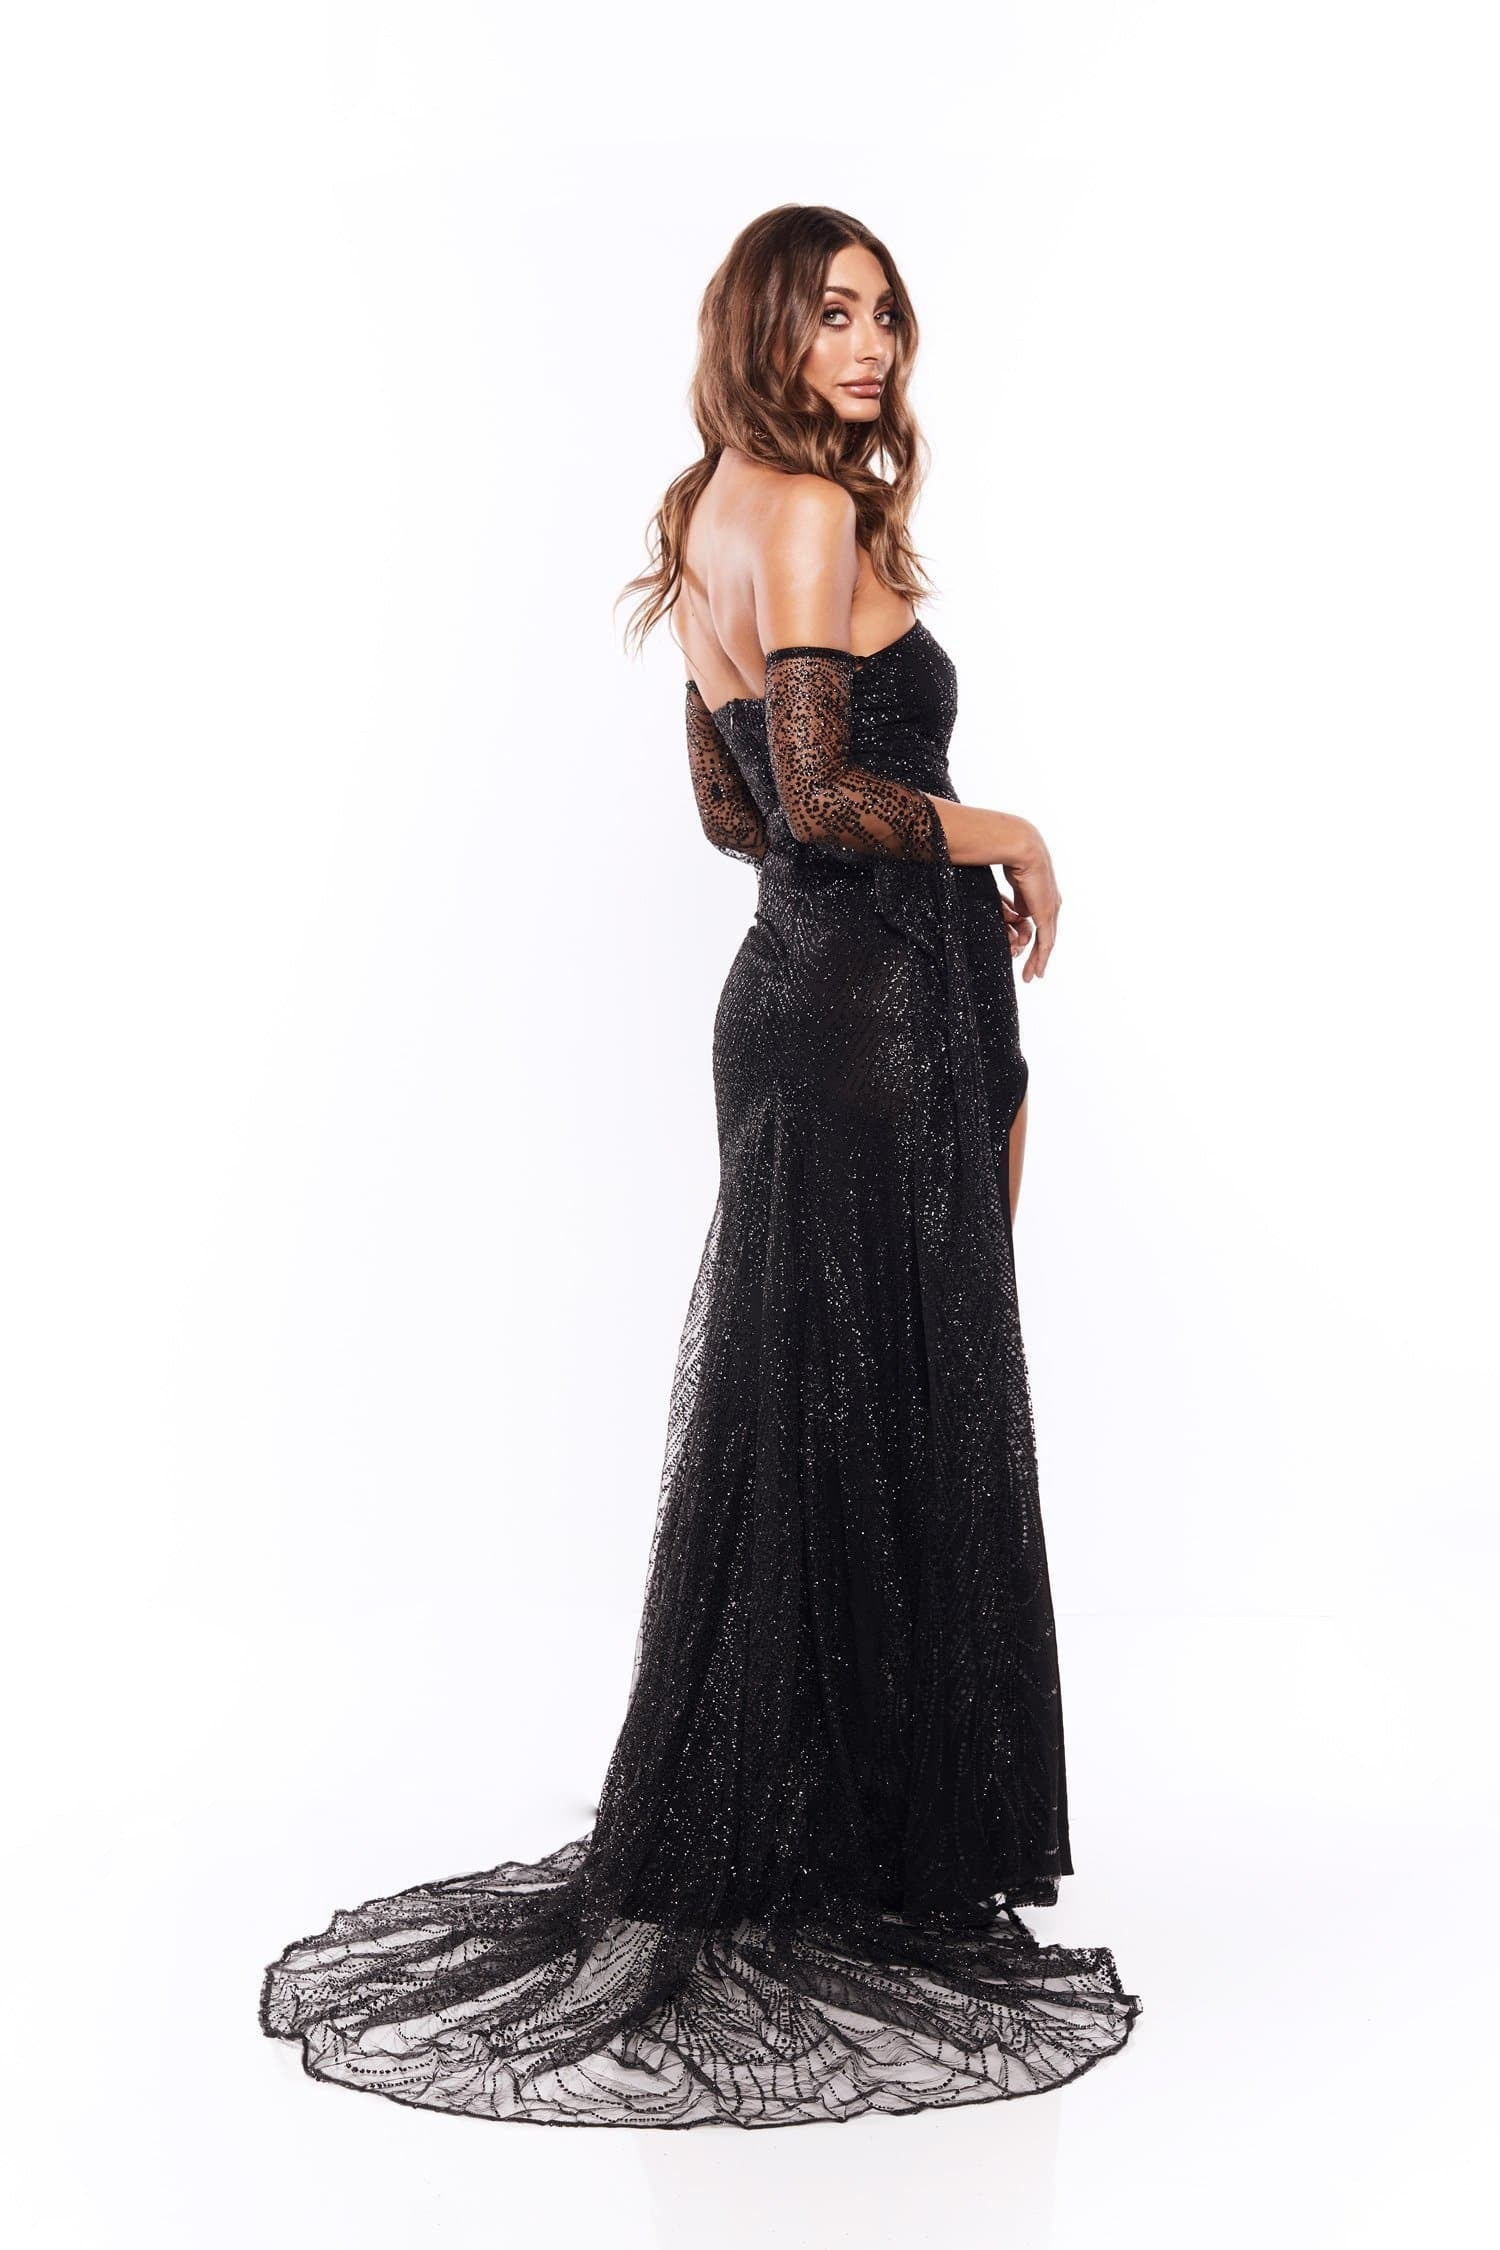 fd55a24b0a8 ... Jocelina - Black Glitter Gown with Long Sheer Sleeves and Side Slit